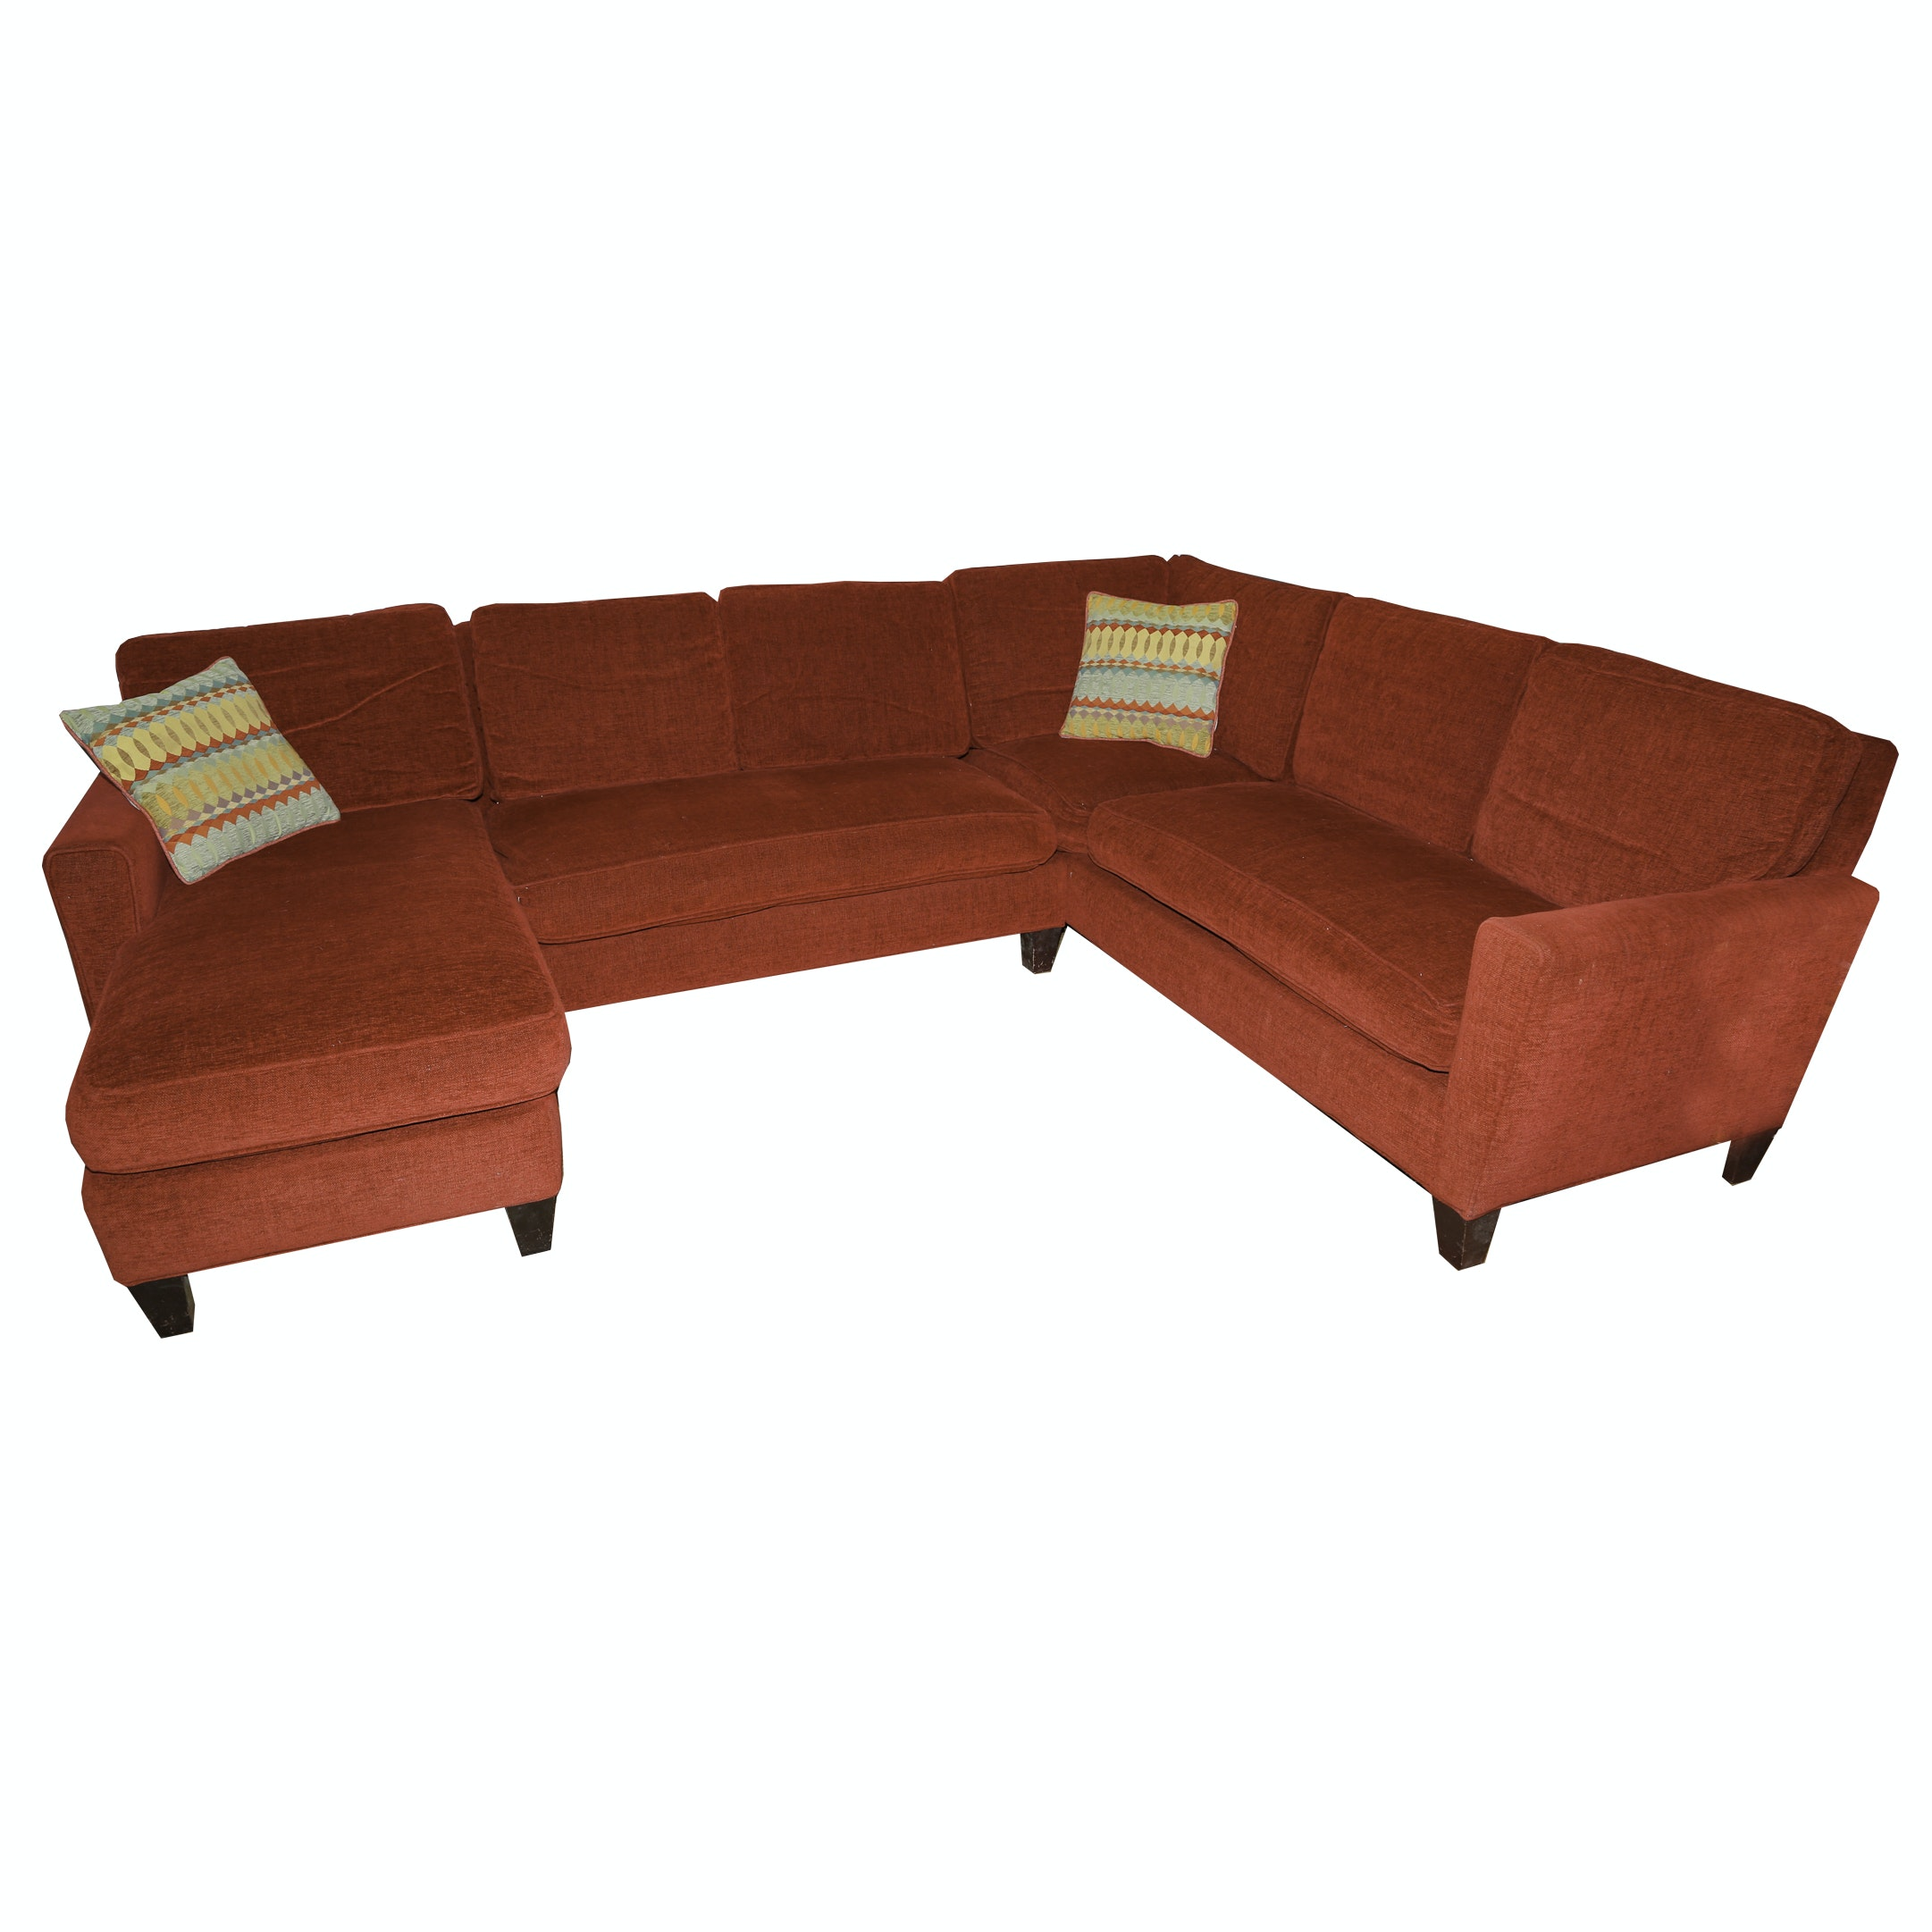 Red Upholstered Sectional Sofa by Storehouse Furniture : EBTH